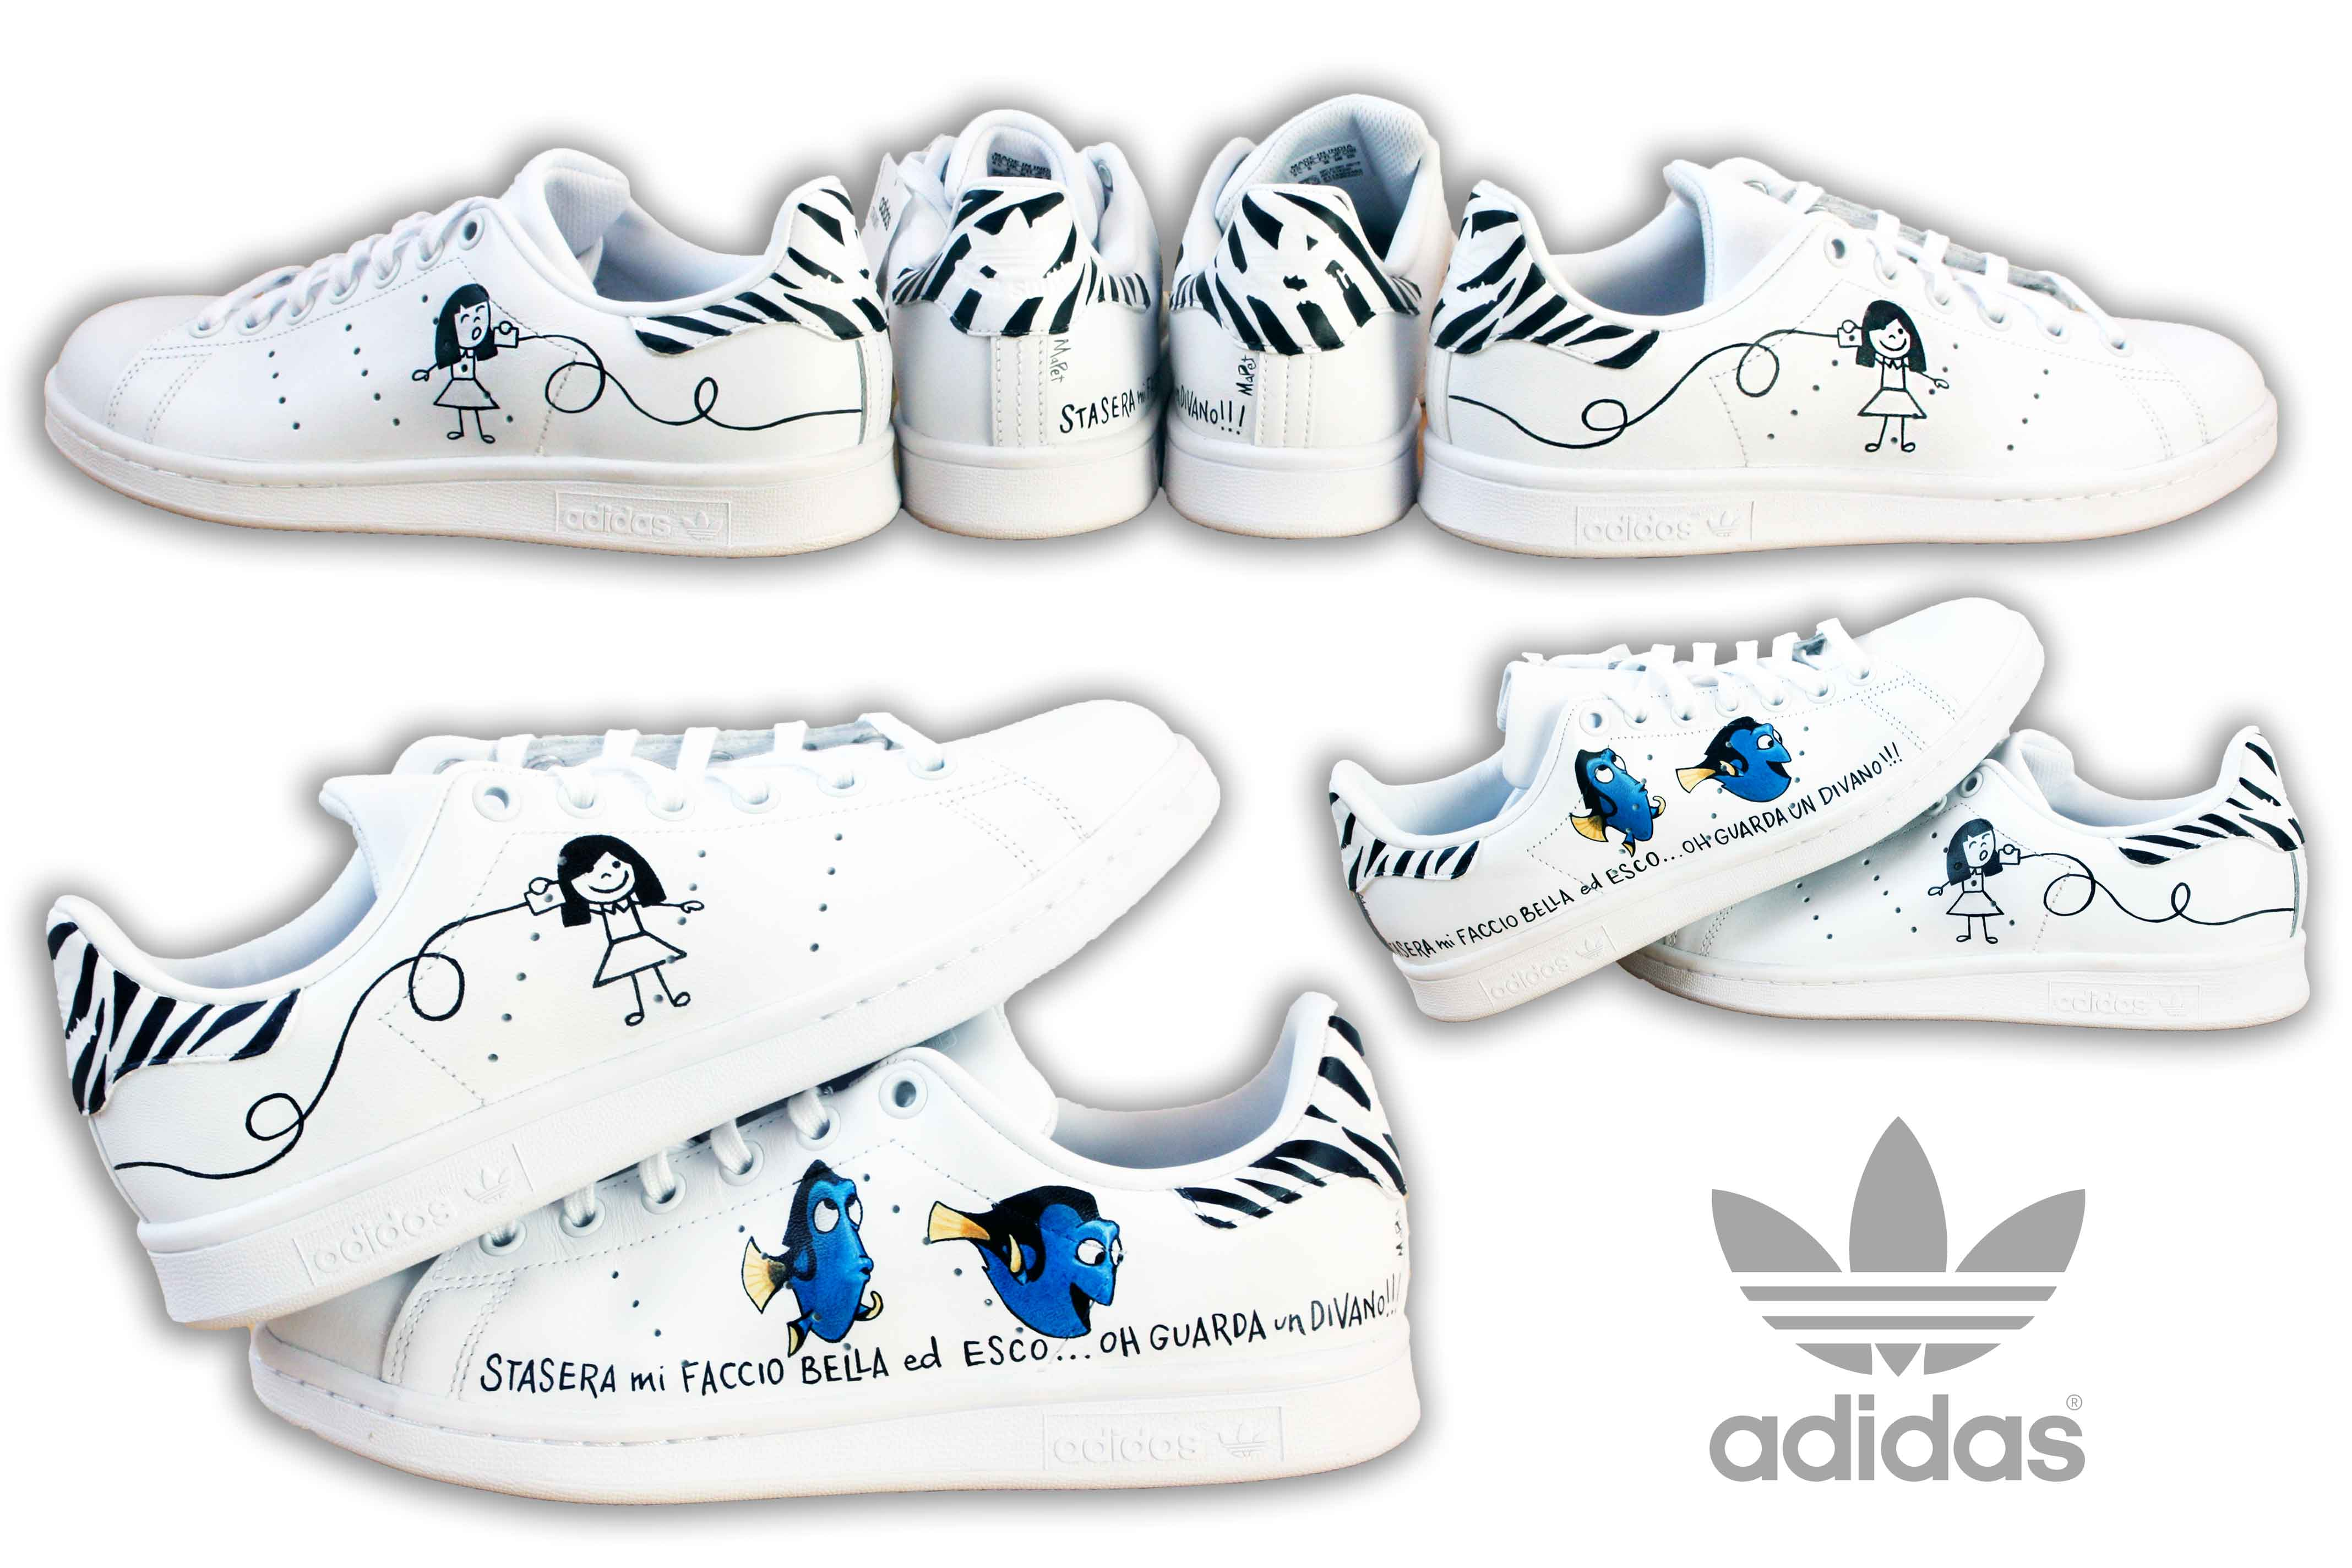 check out df4c9 decd5 Adidas Stan Smith personalizzate